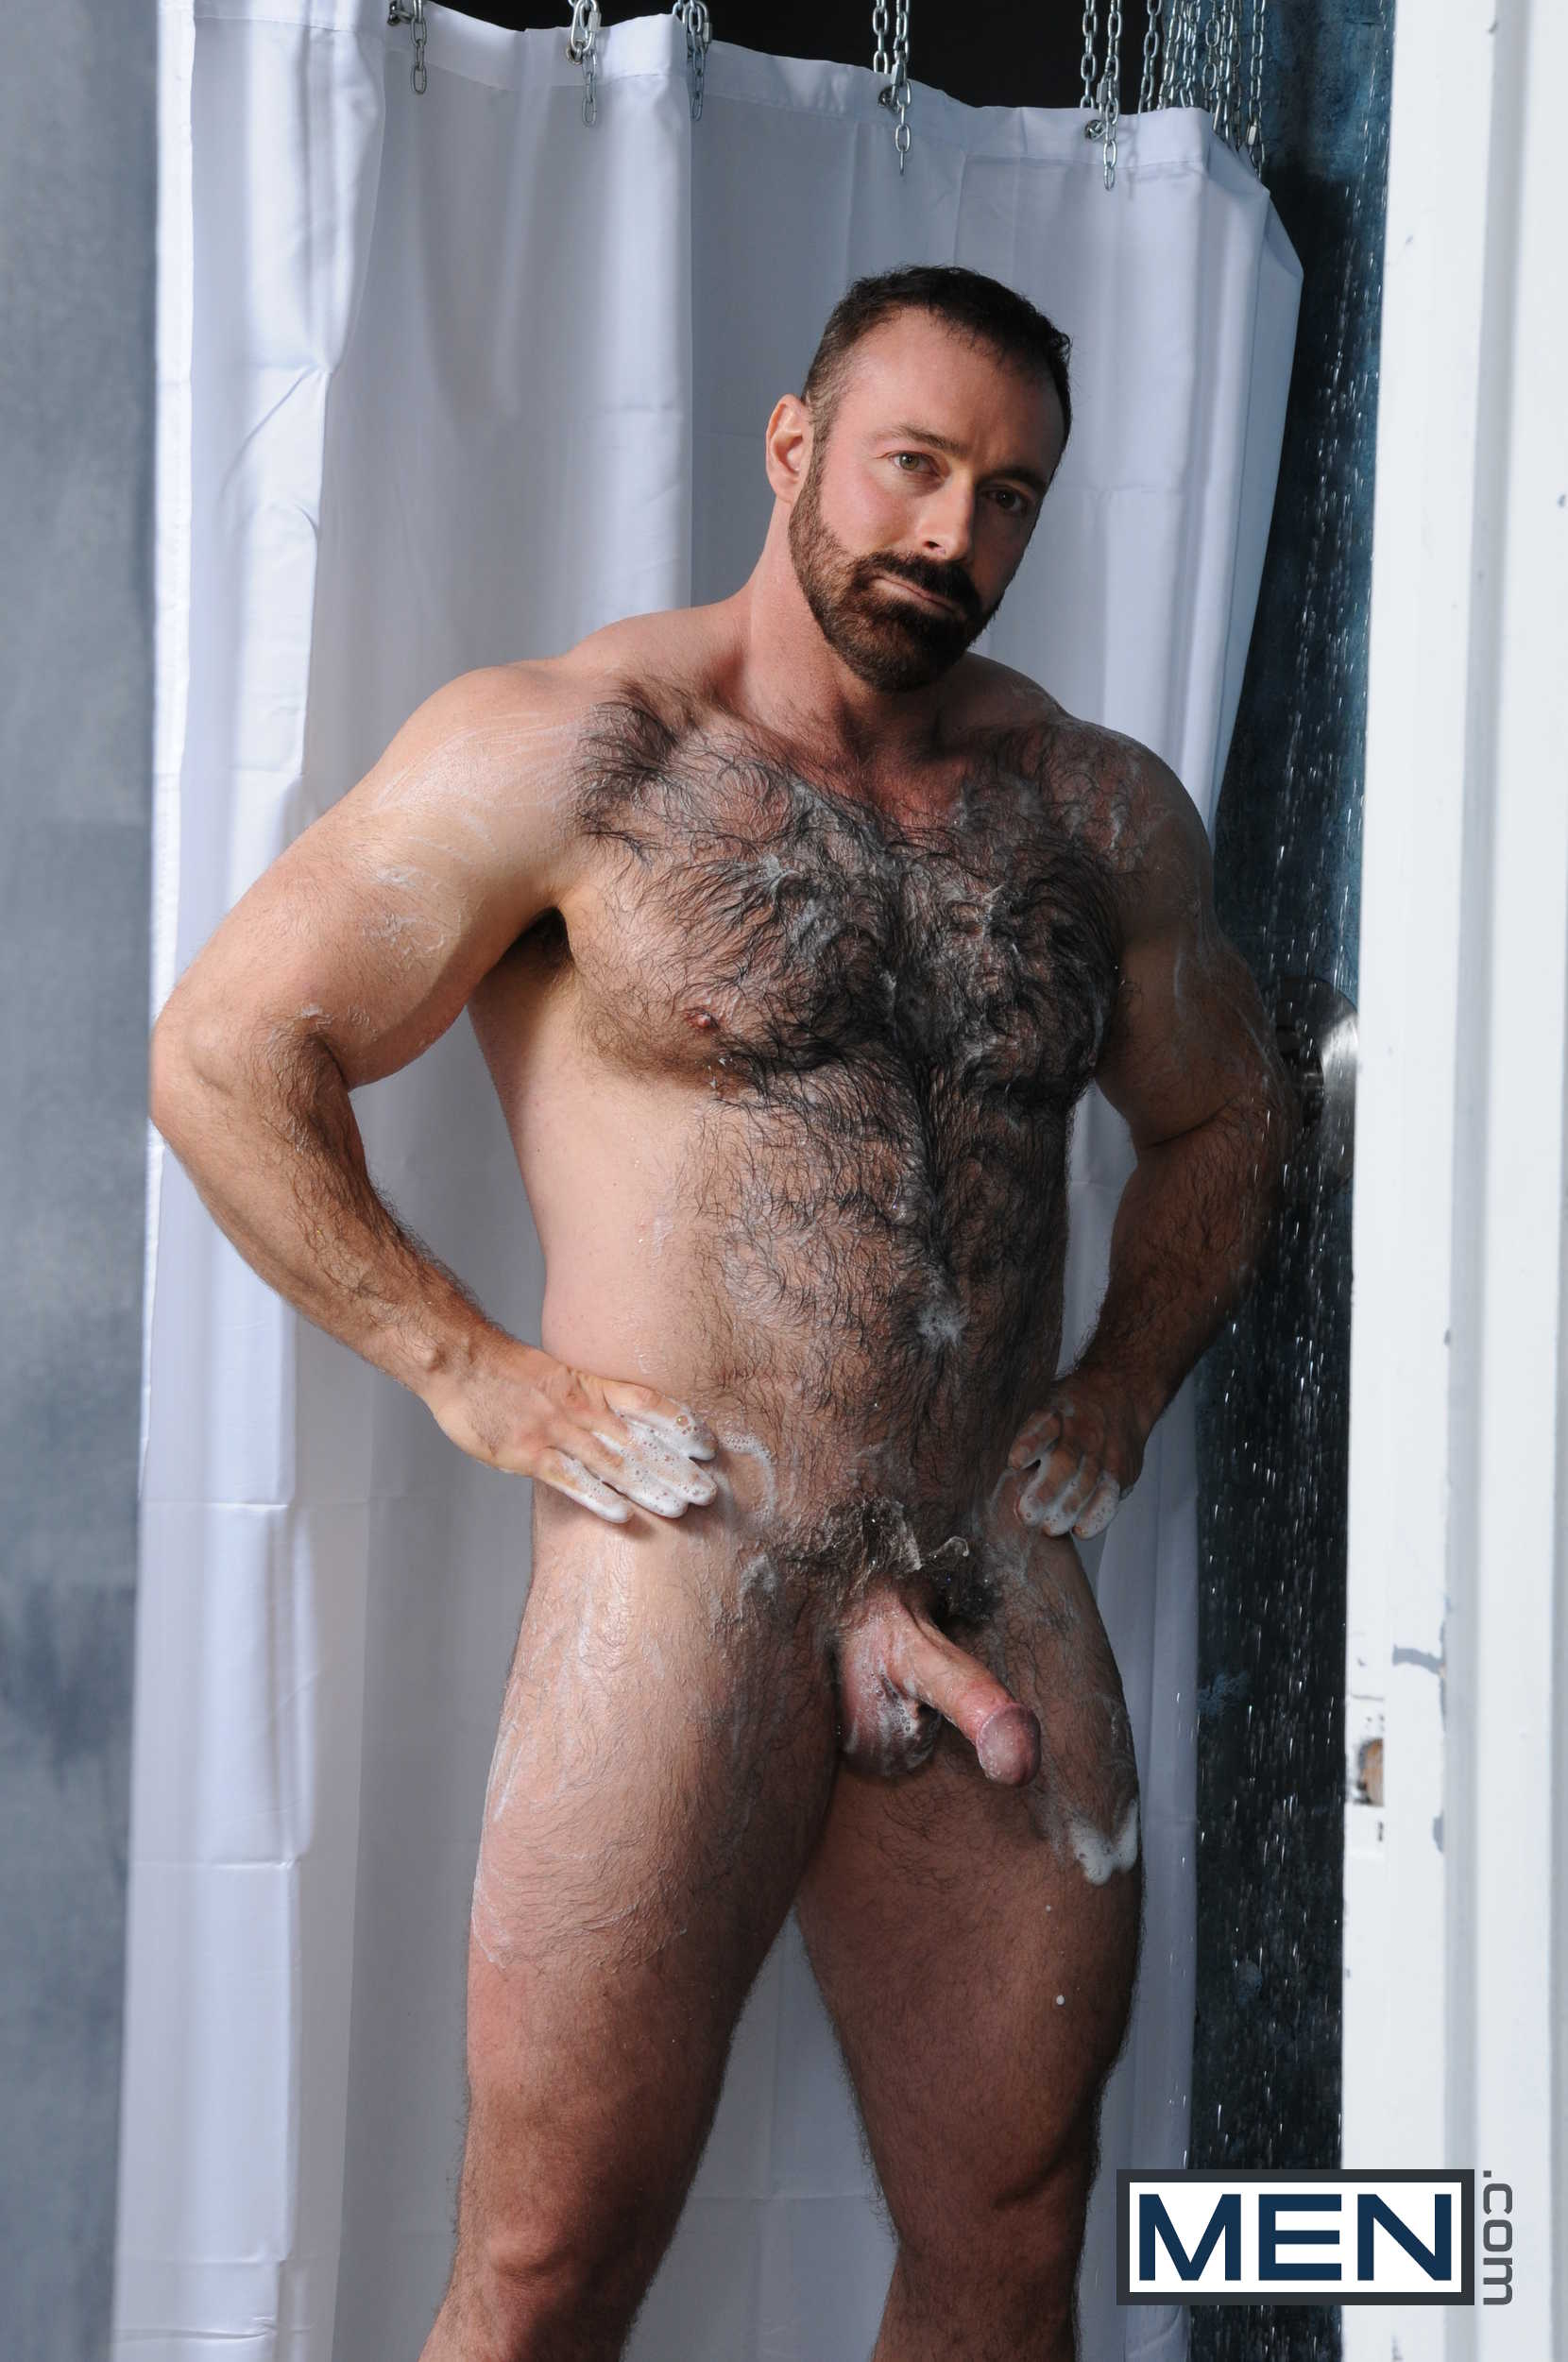 Fantastic, love Hairy men in the shower video